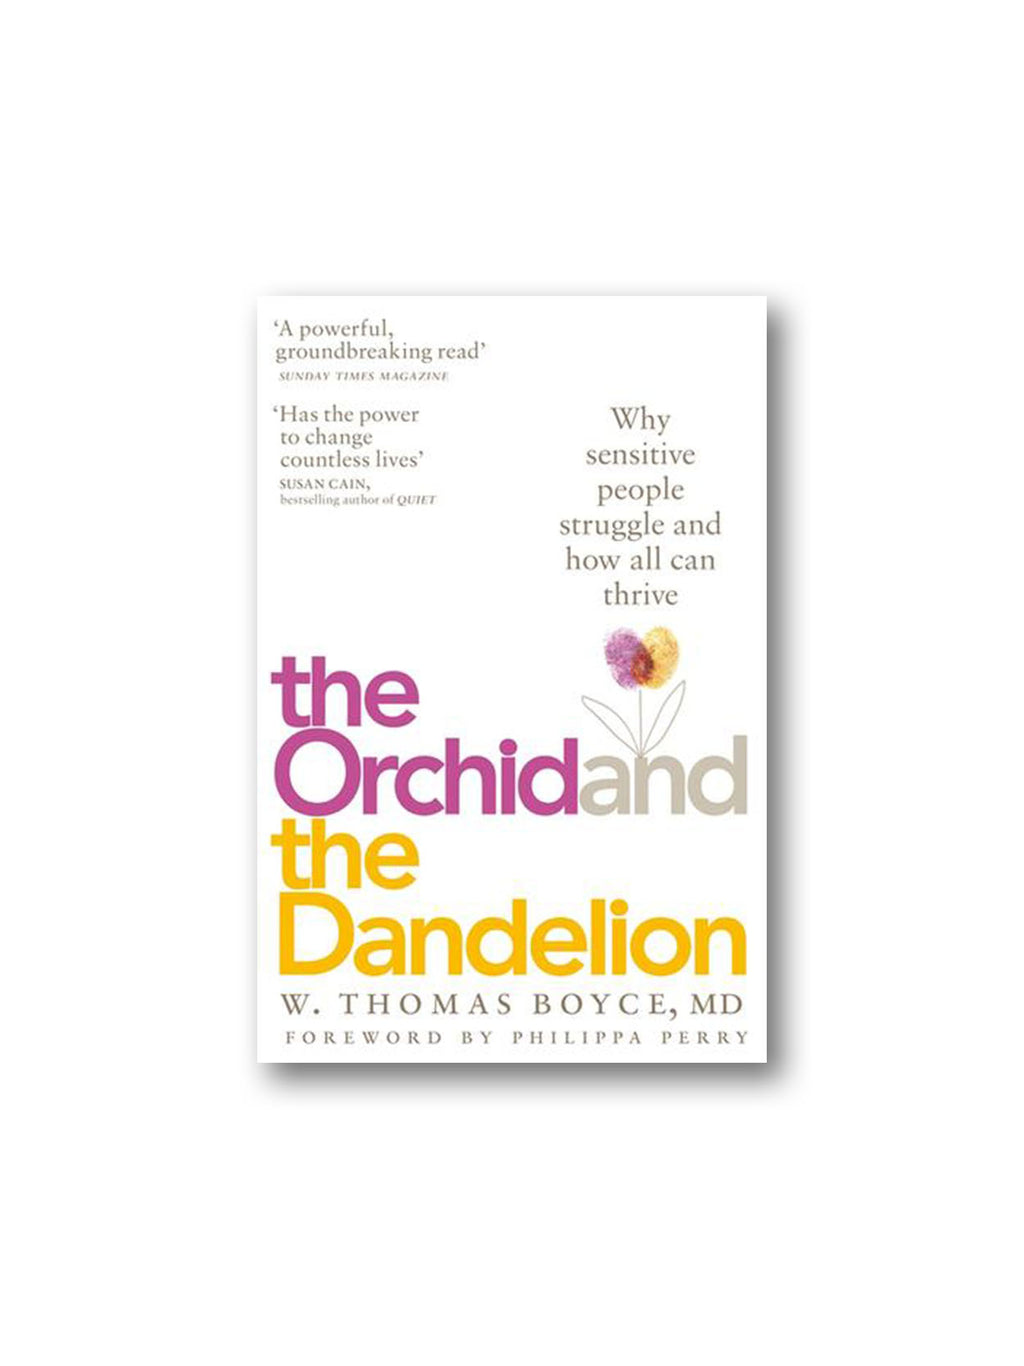 The Orchid and the Dandelion : Why Sensitive People Struggle and How All Can Thrive